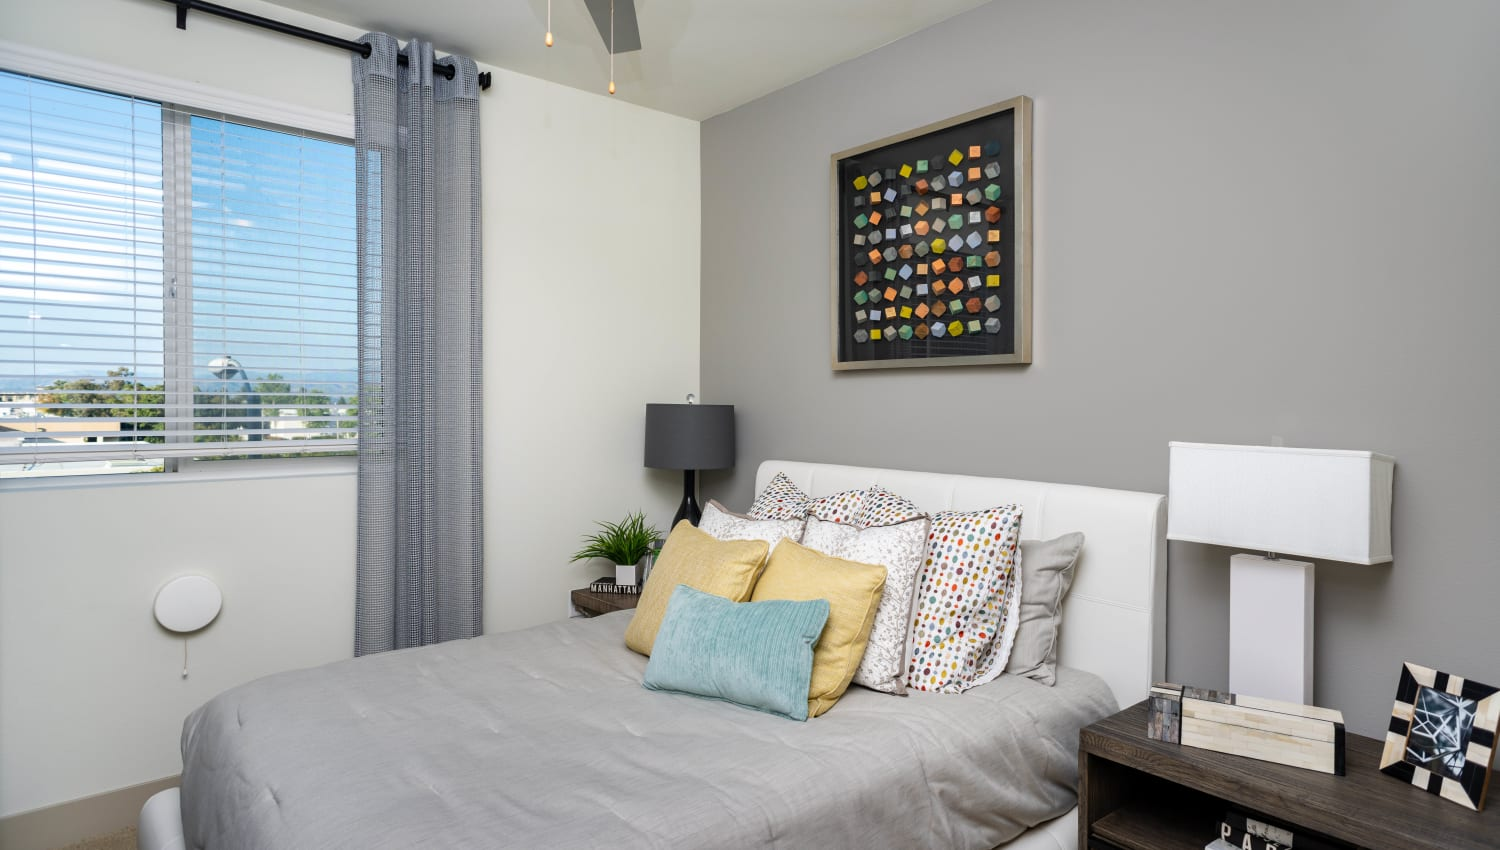 Accent wall in the guest bedroom of a model home at Fusion Apartments in Irvine, California